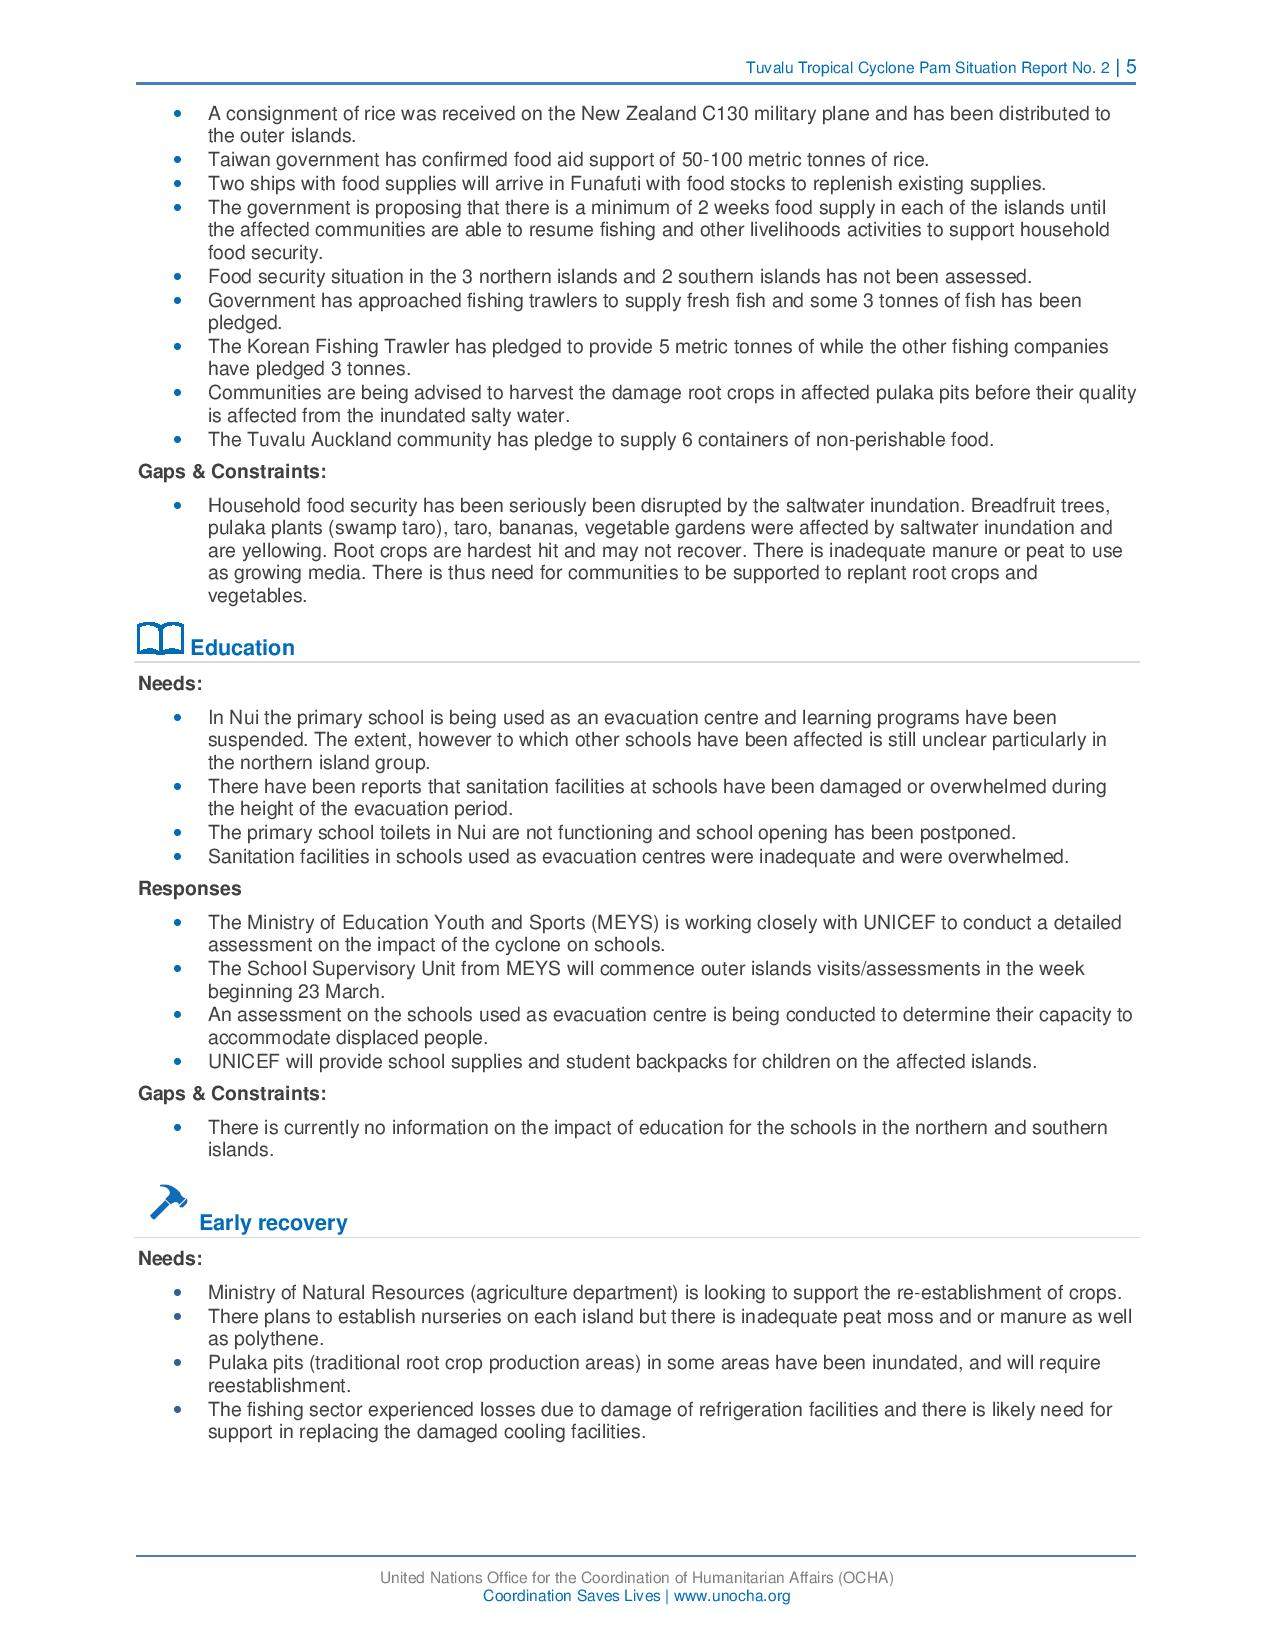 reliefweb.int_sites_reliefweb.int_files_resources_Tuvalu Tropical Cyclone Pam Situation Report No. 2-page-005.jpg